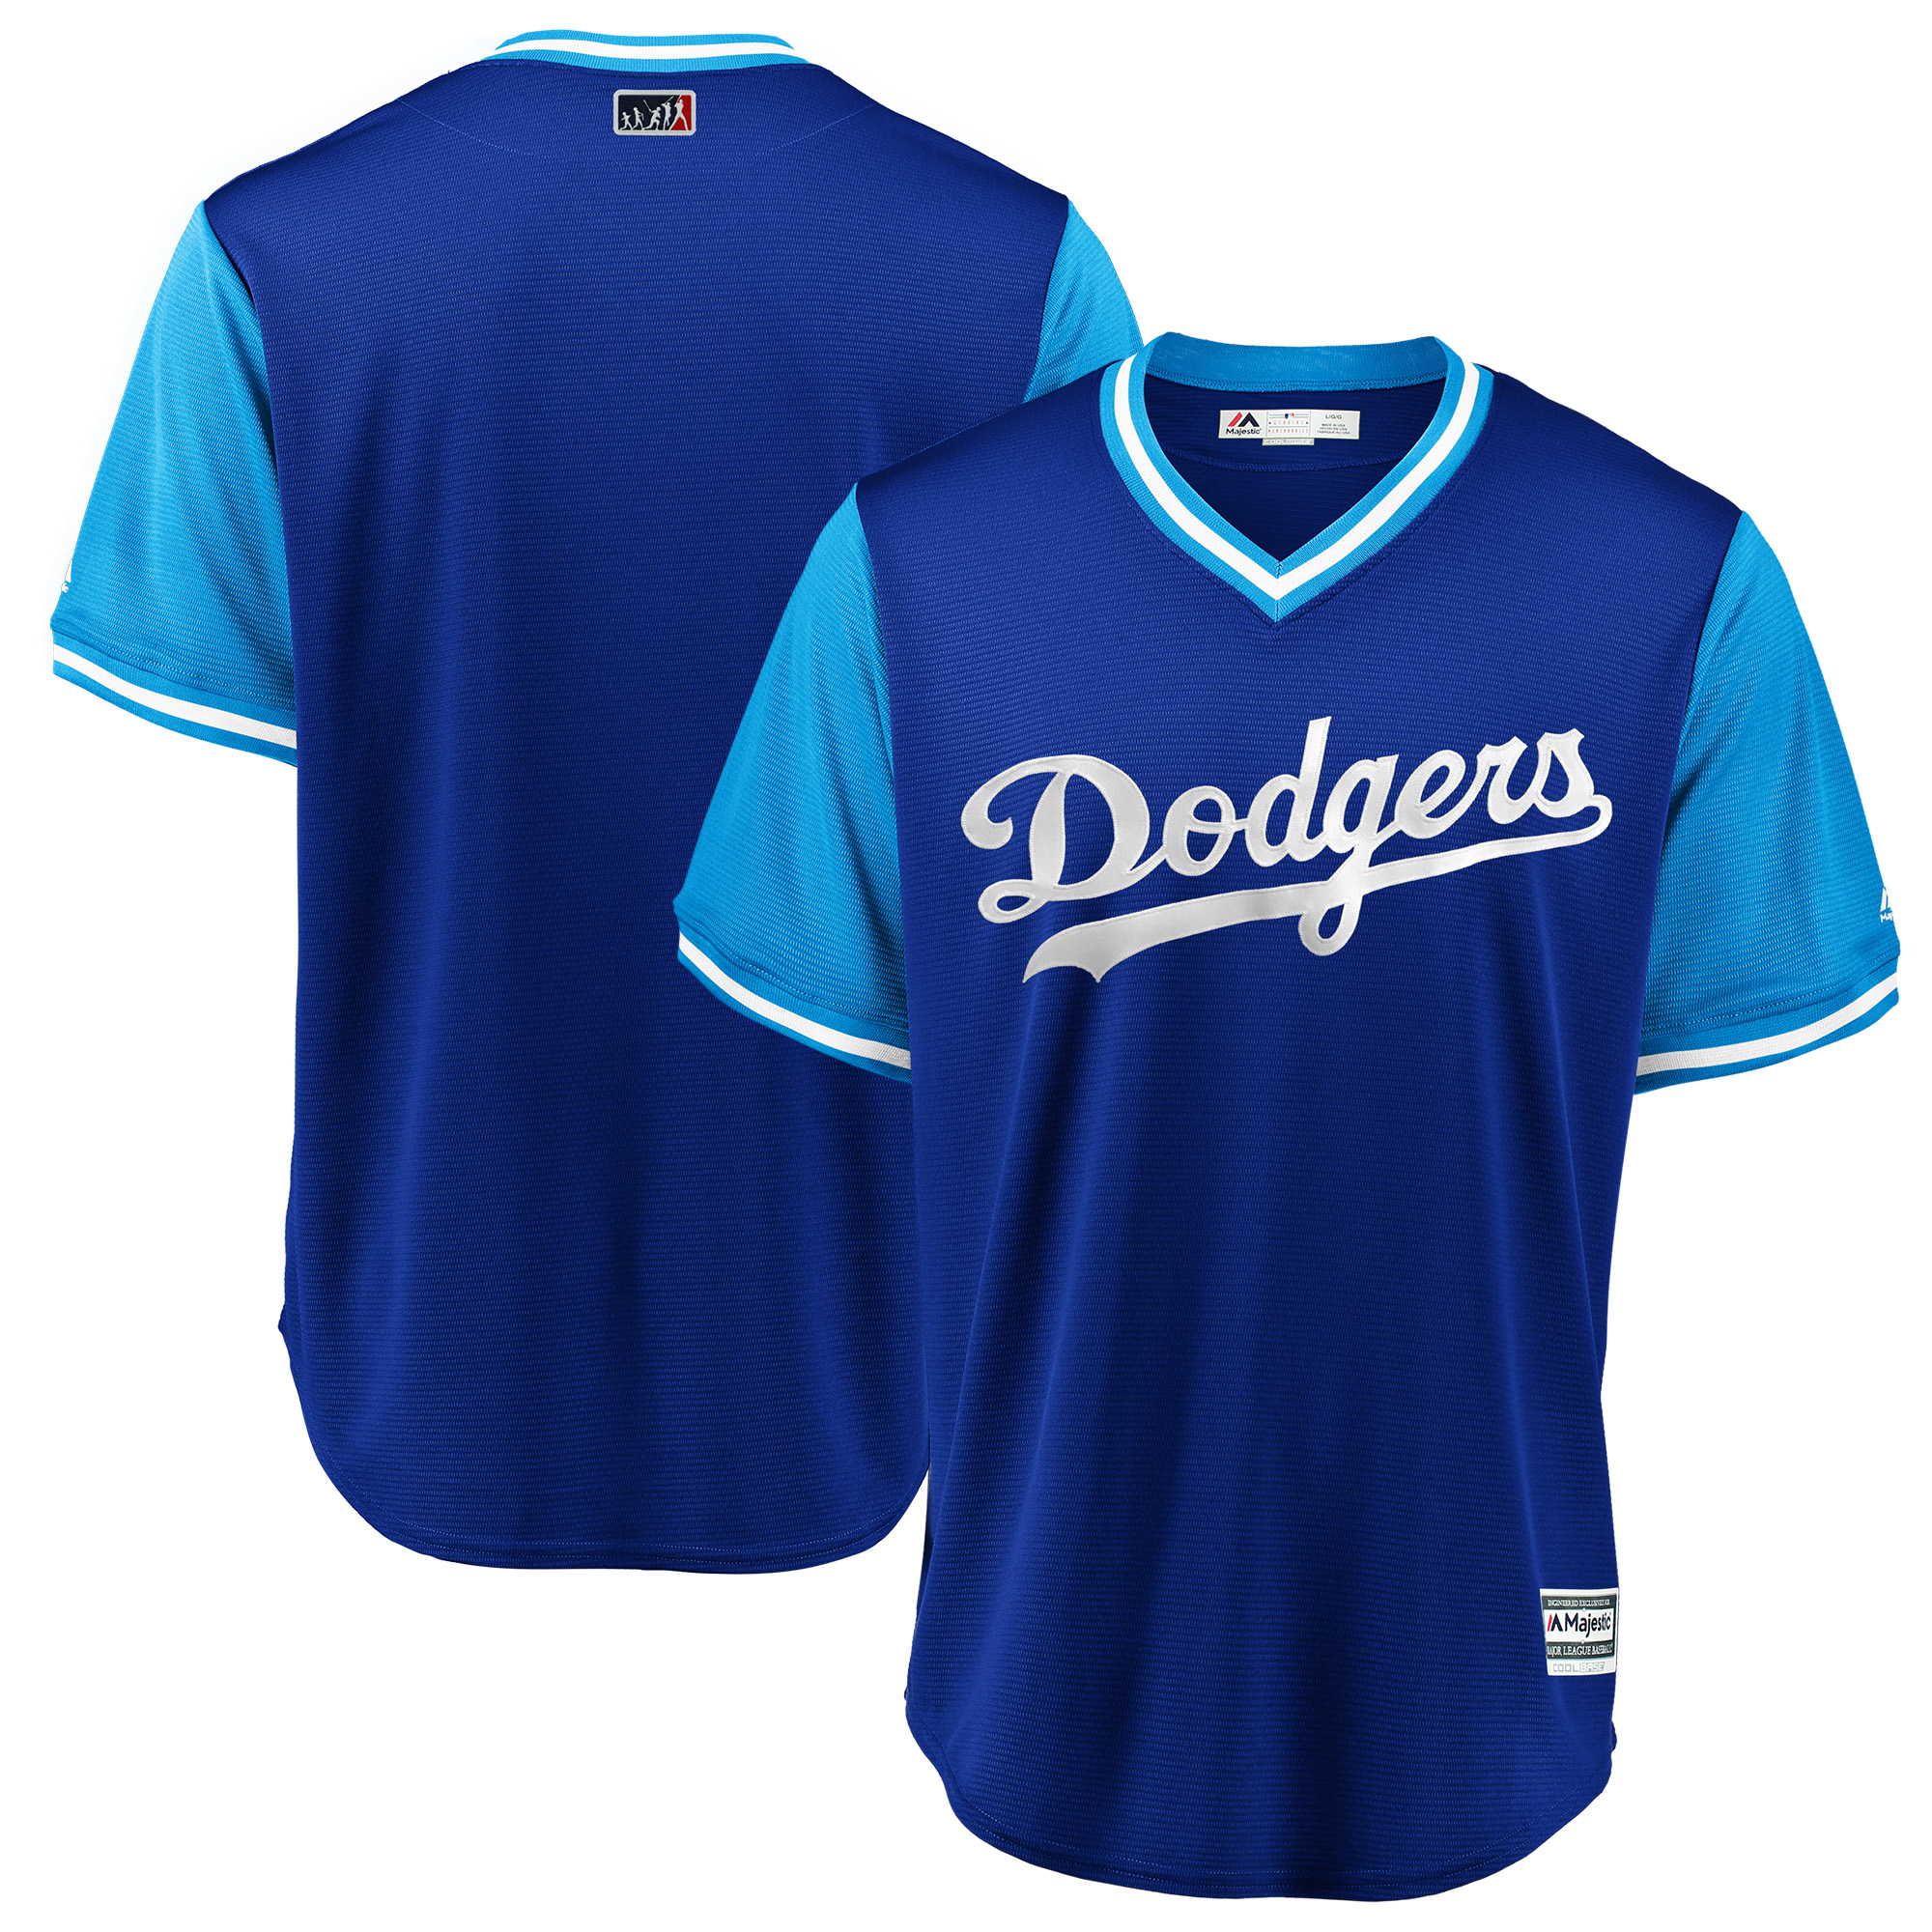 Los Angeles Dodgers Majestic 2018 Players' Weekend Team Jersey - Royal/Light Blue